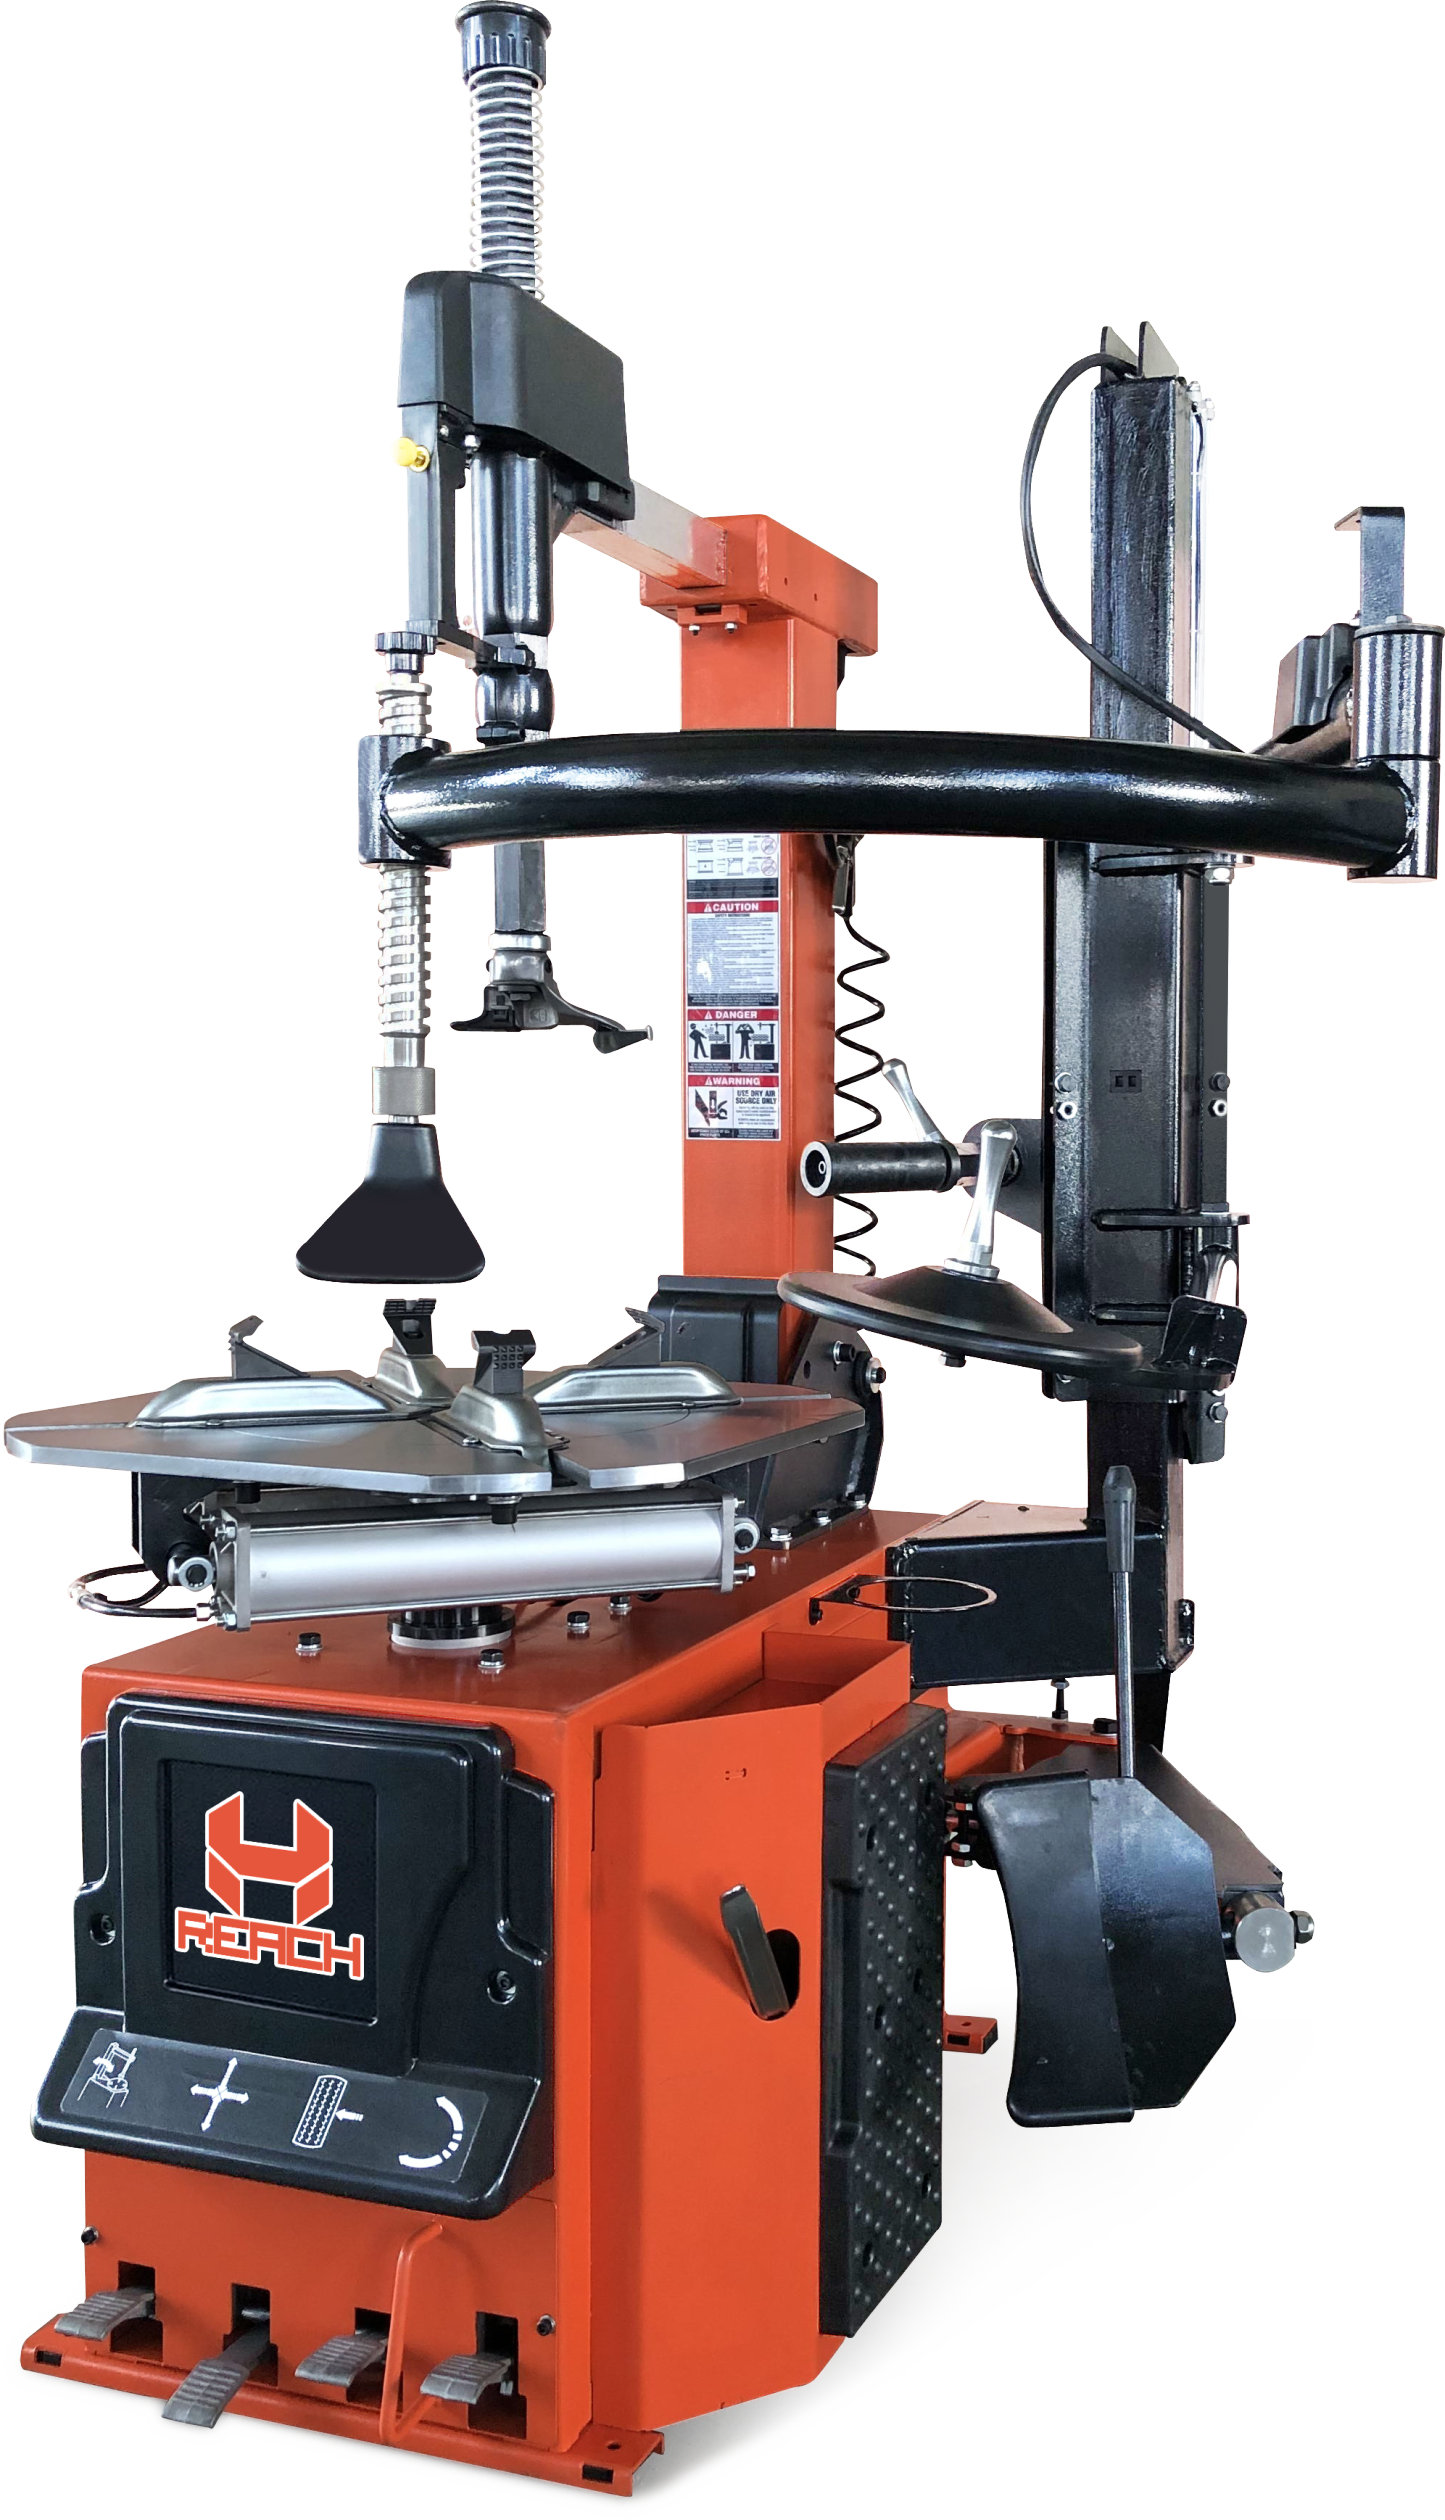 RH-850M Automatic tire changer machine and tyre changing equipment Featured Image